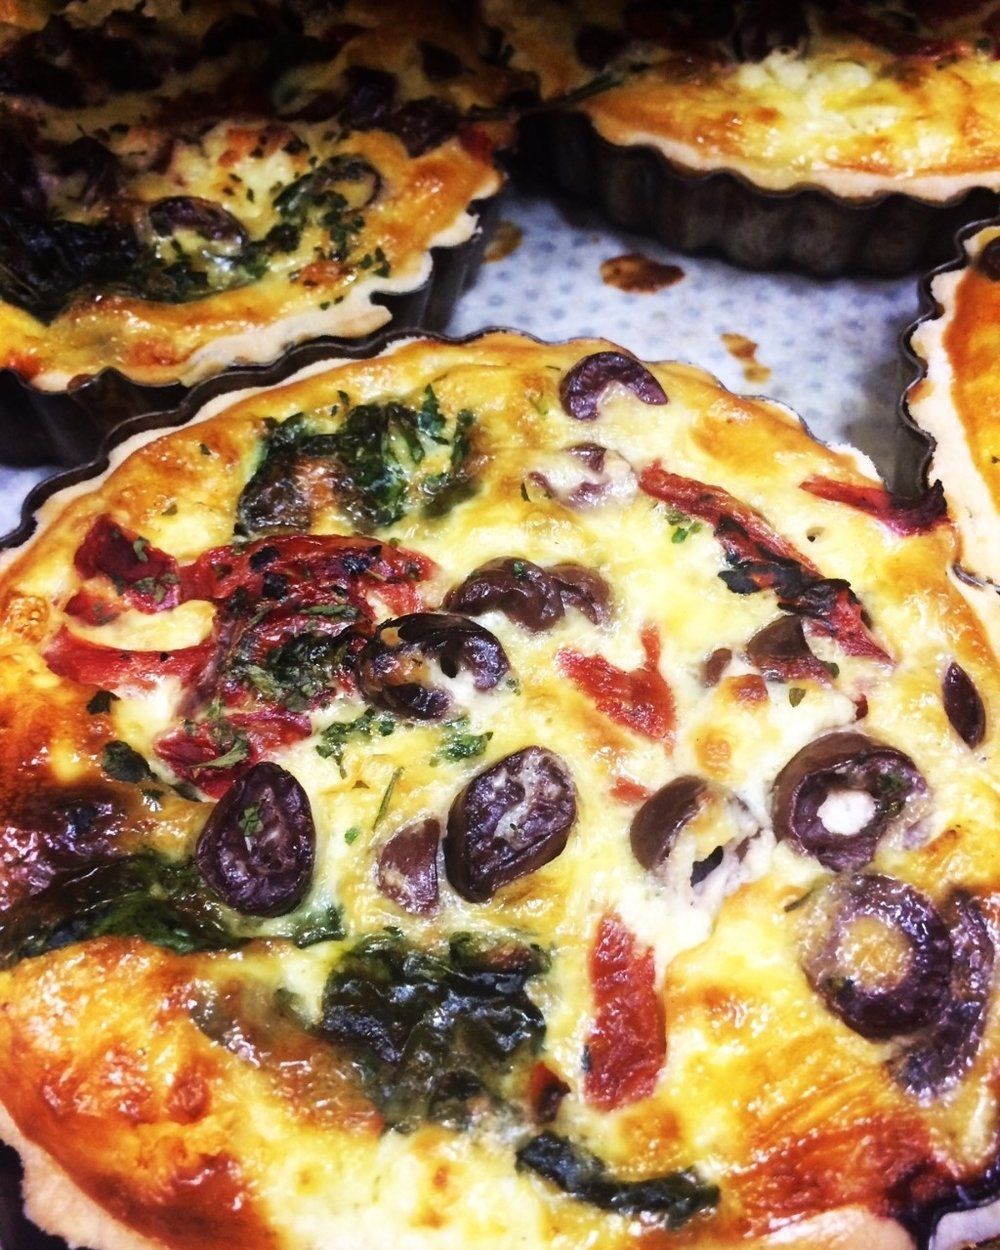 Mediterranean Tarts & Quiches    Retail -Large family sized tarts & Quiche twin packs  Cafe/Deli -Individual Quiches